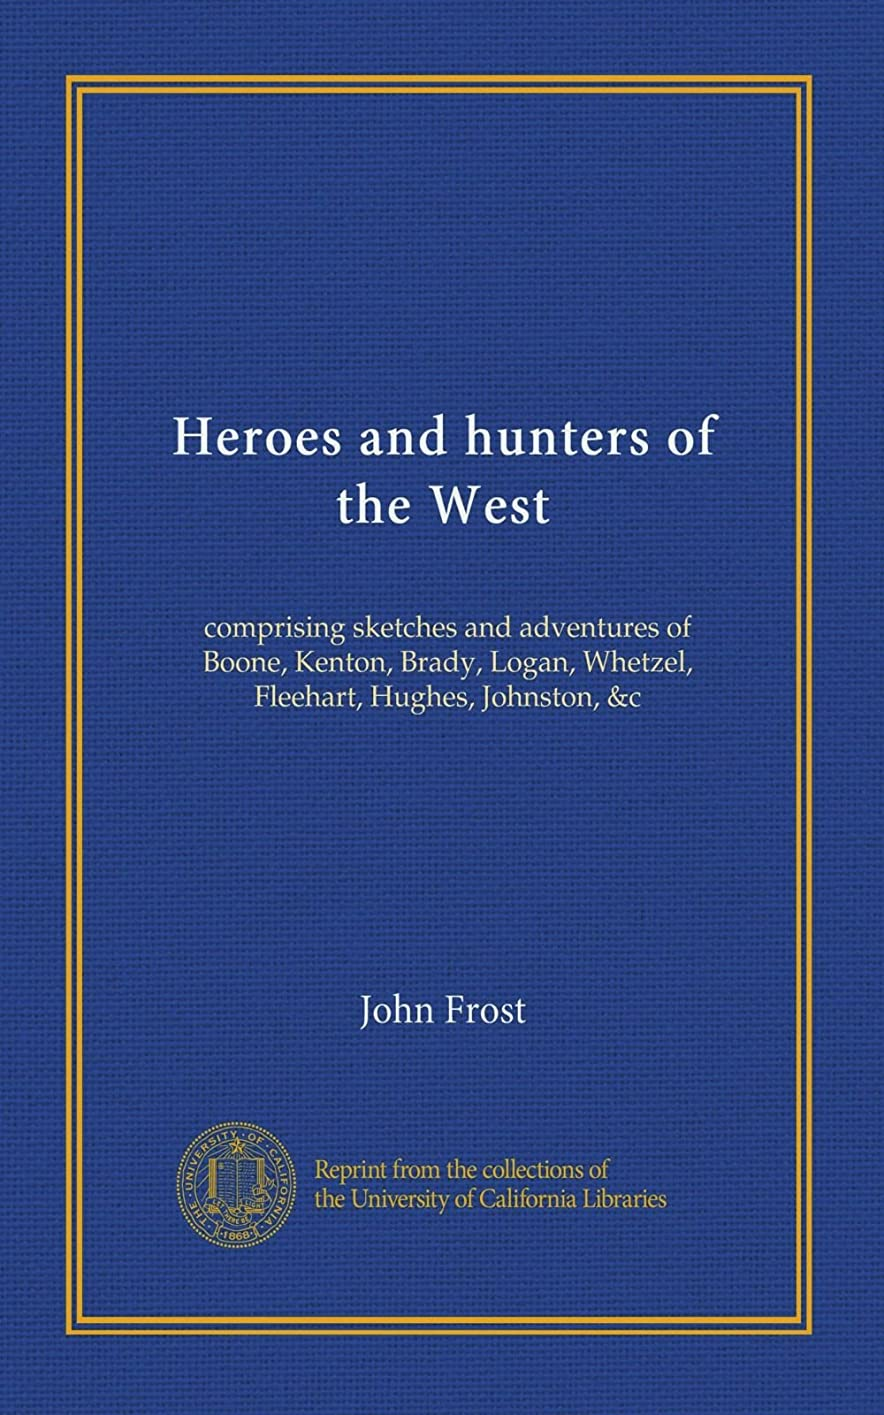 シソーラス素晴らしいですビジョンHeroes and hunters of the West: comprising sketches and adventures of Boone, Kenton, Brady, Logan, Whetzel, Fleehart, Hughes, Johnston, &c